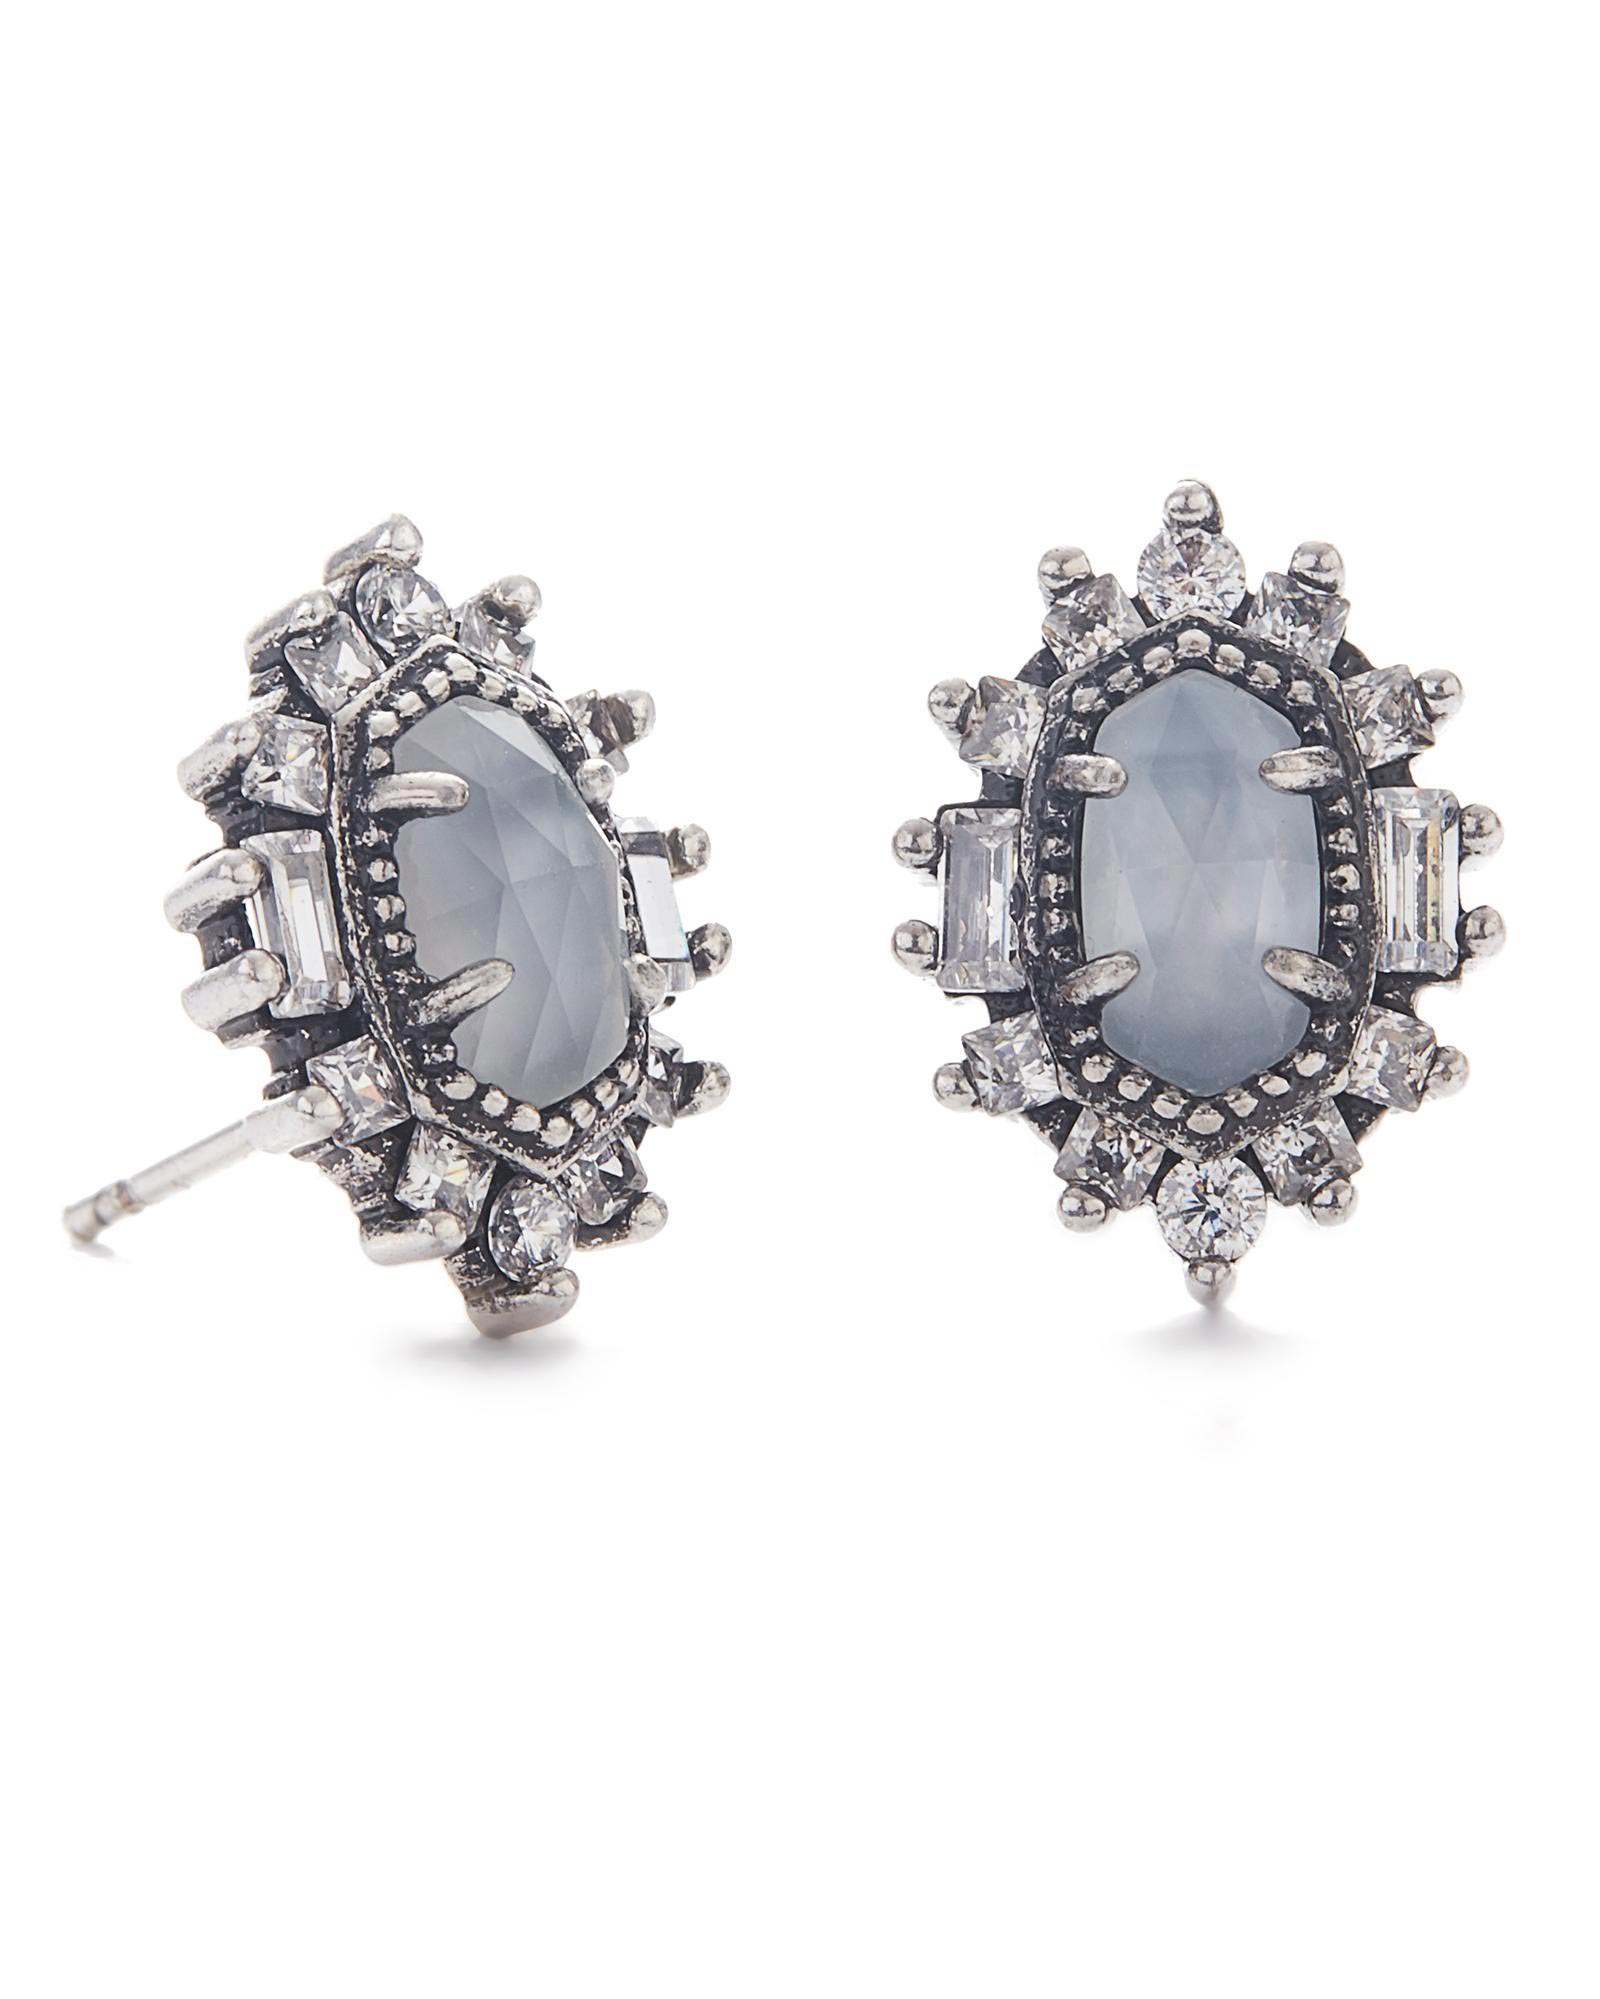 Kaia Stud Earrings in Antique Silver